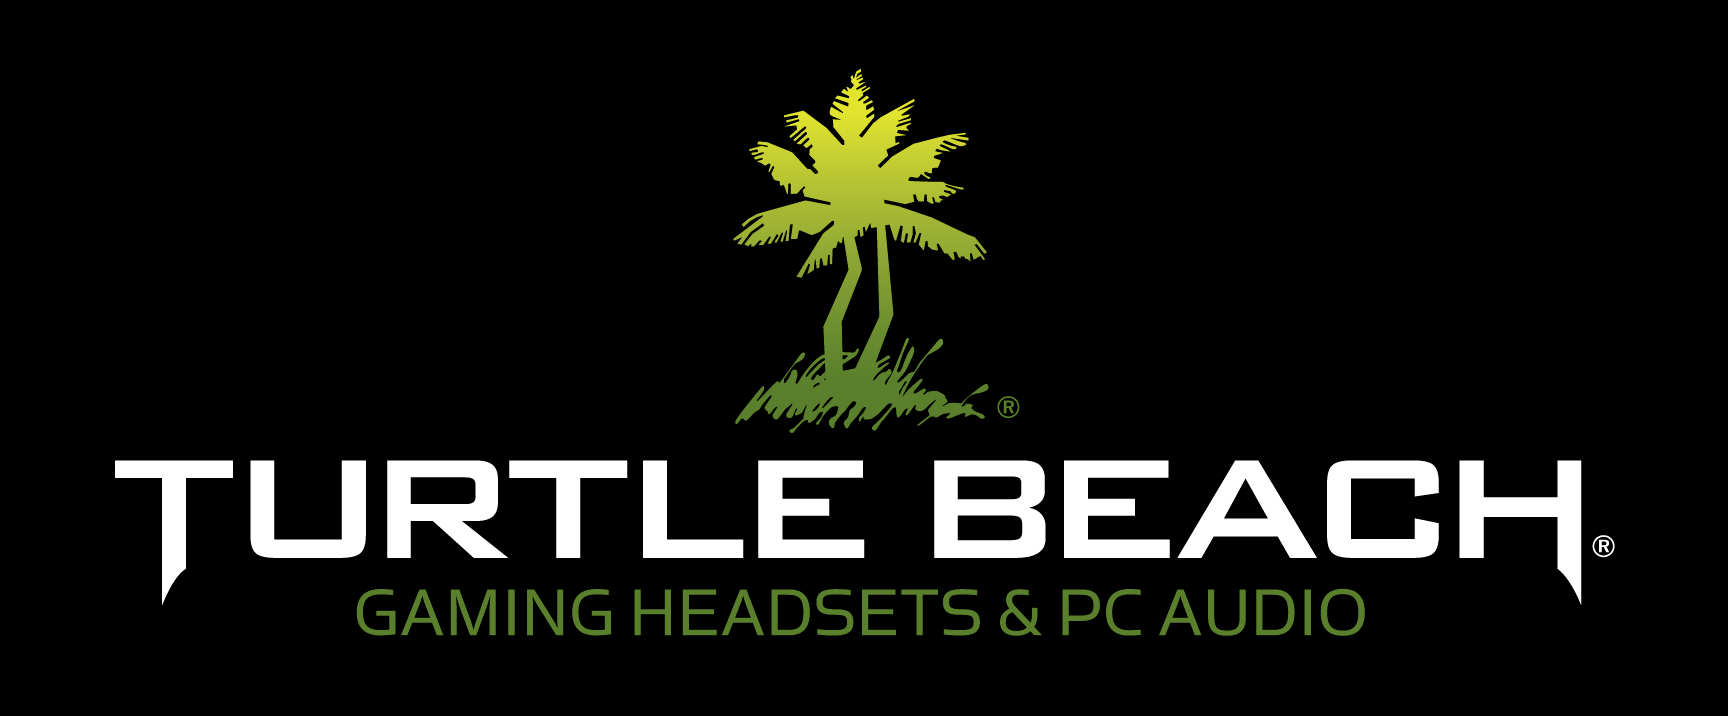 tb logo secondary color onblack Turtle Beach Unveils Incredible Transparent Directional Speakers